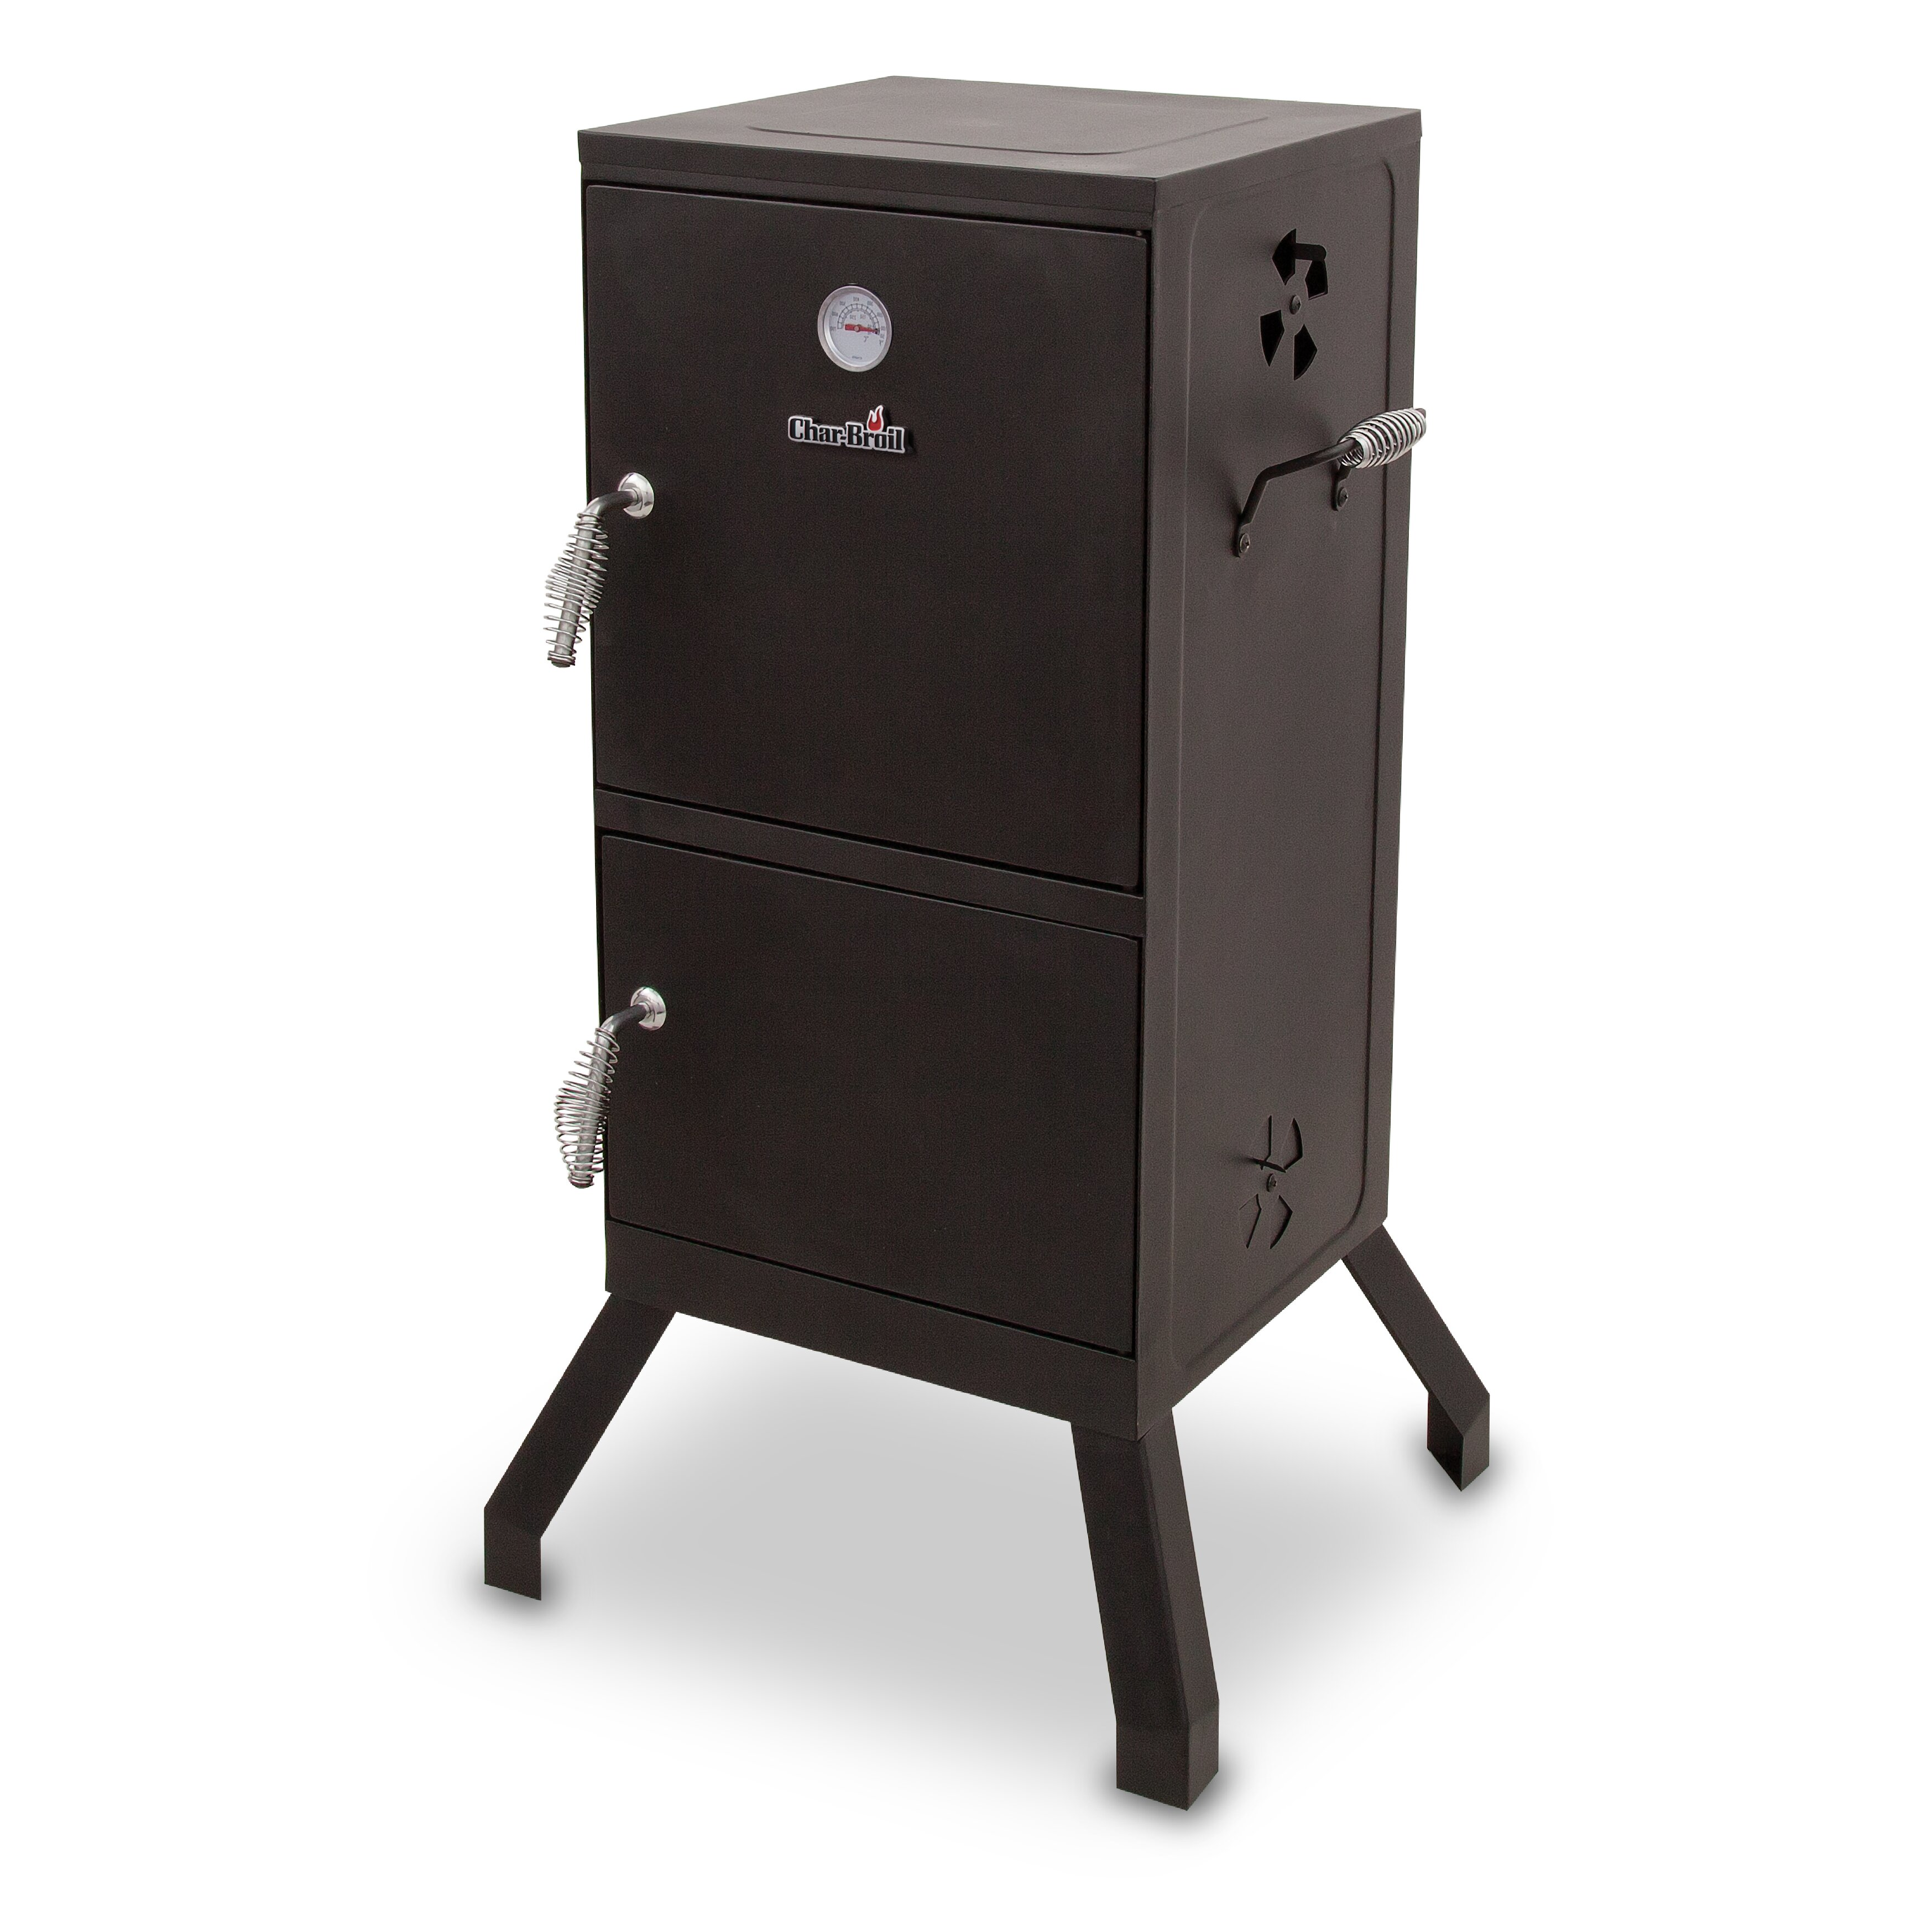 Bedroom Vanity Sets With Lights Charbroil Charcoal Smoker Amp Reviews Wayfair